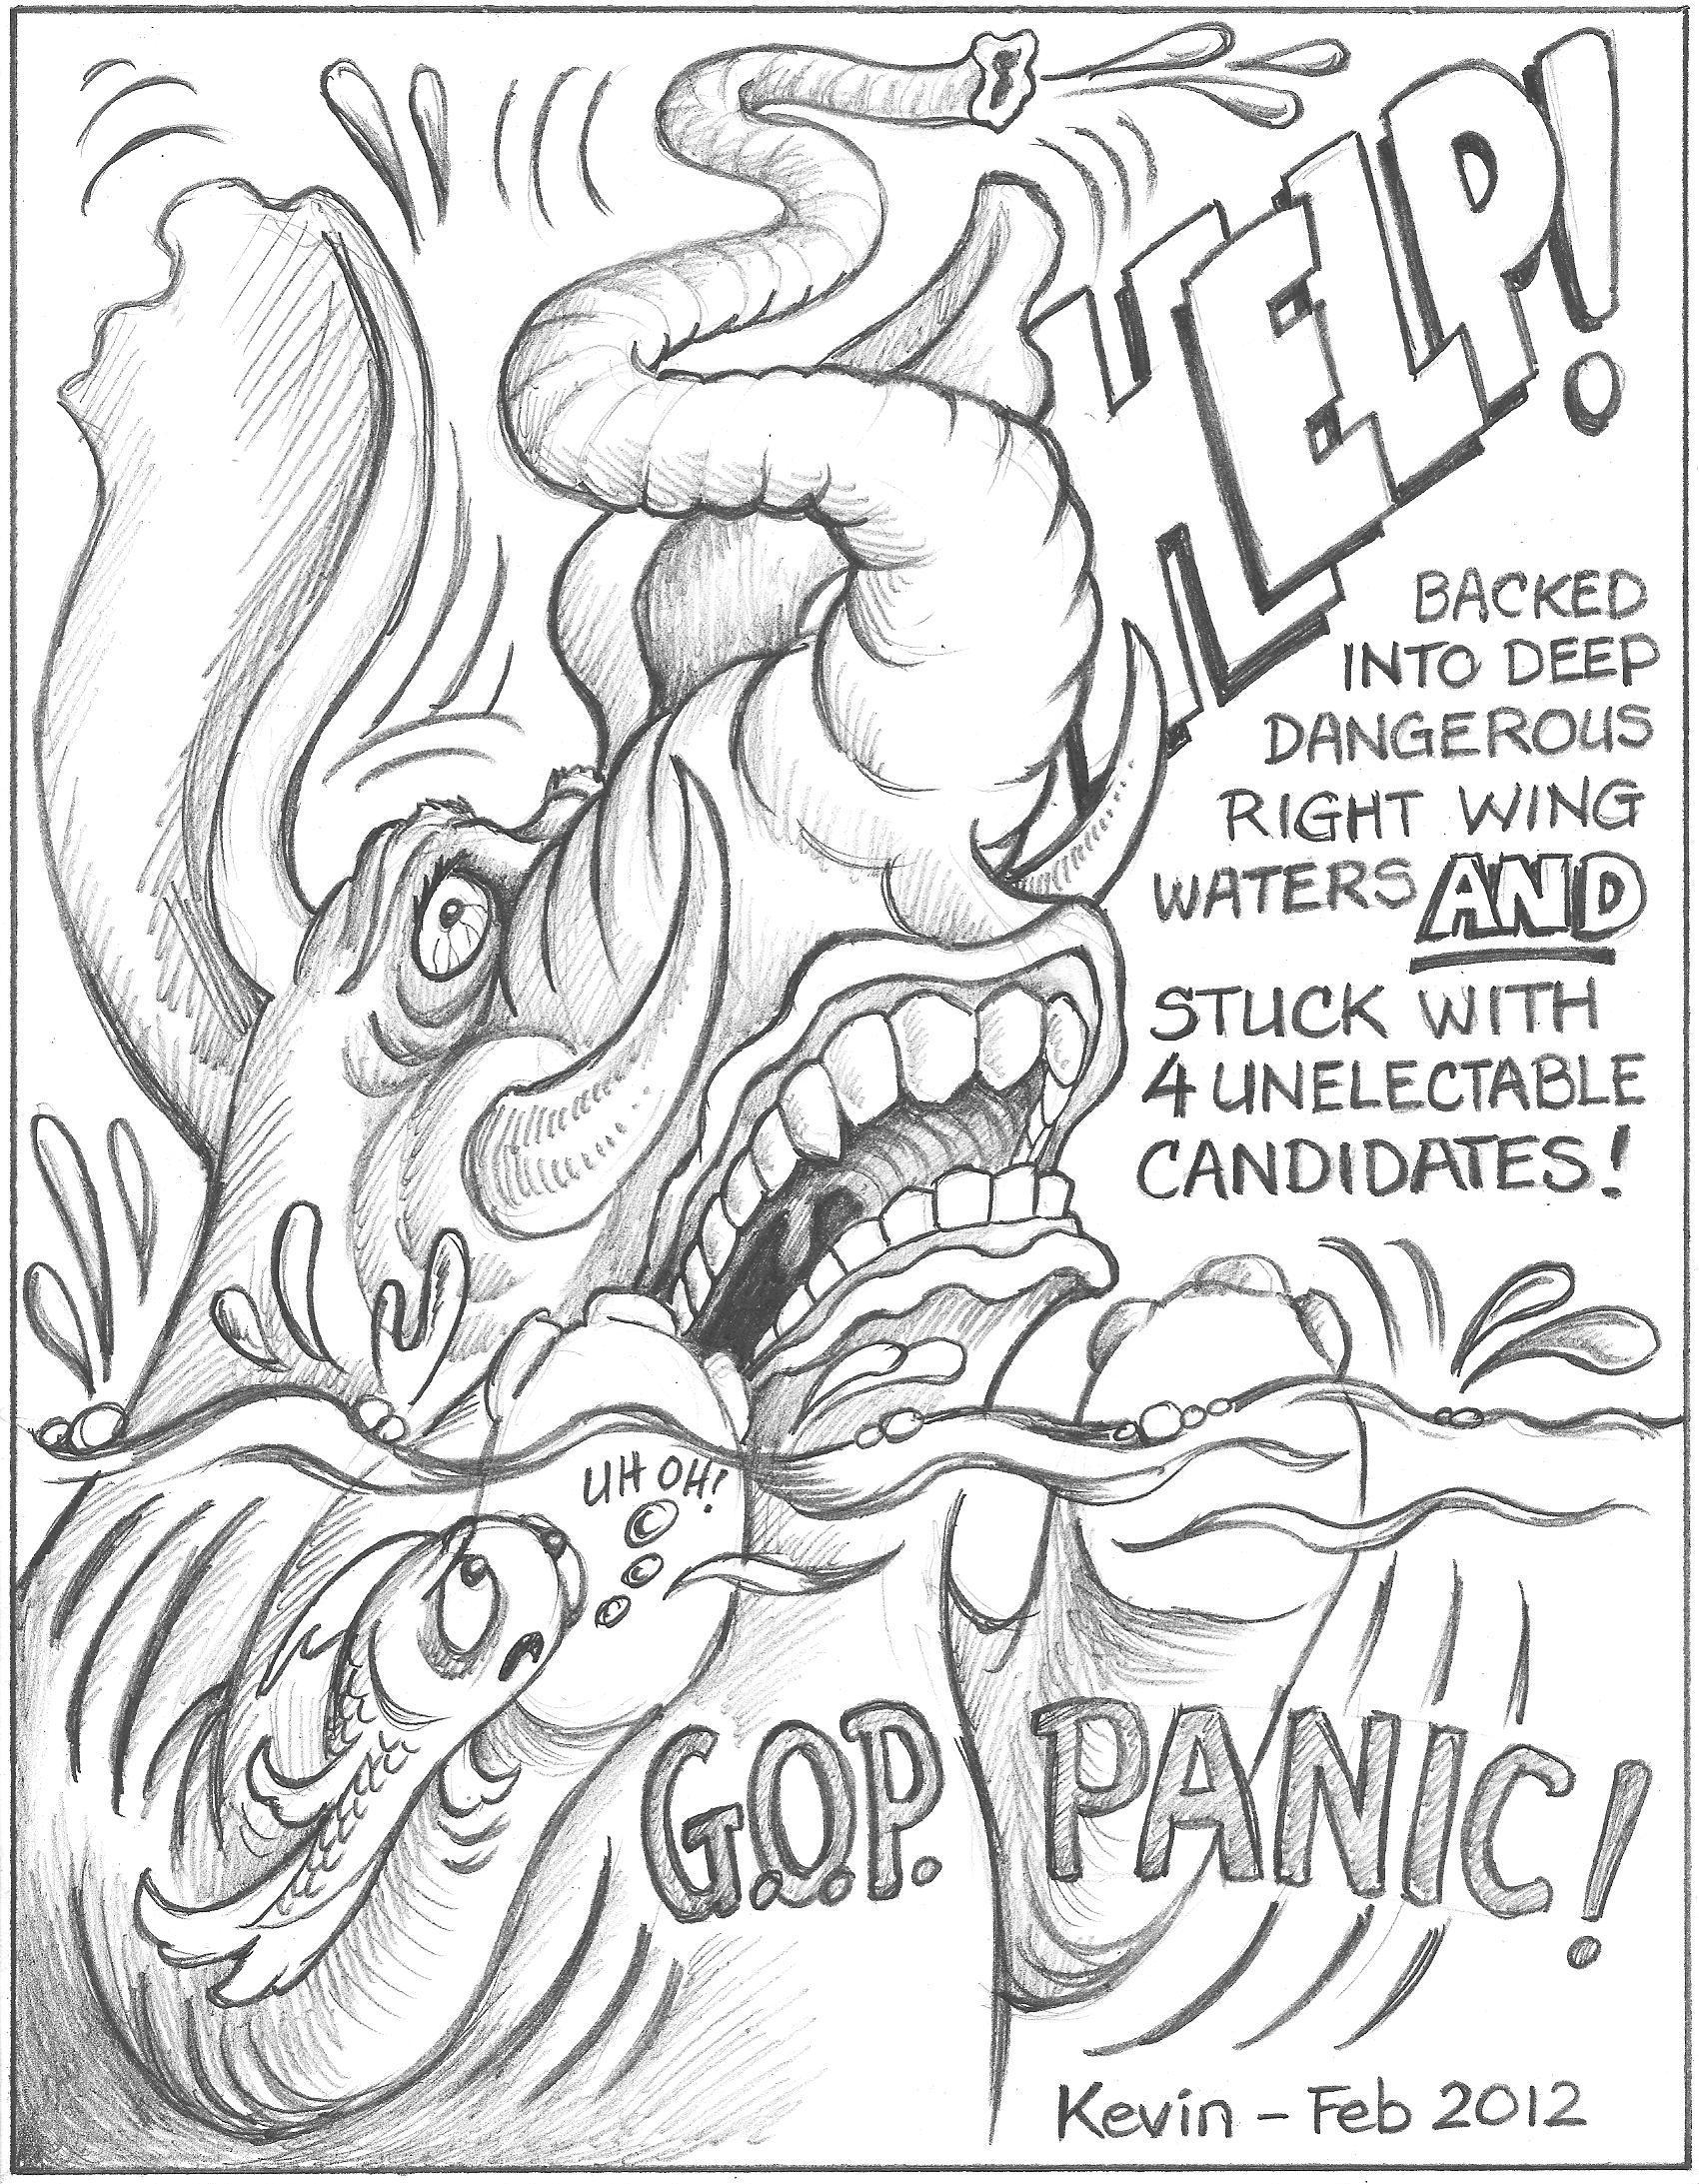 2ol gop panic cartoon feb 21 12 jpg cb america democracy essay from silent war